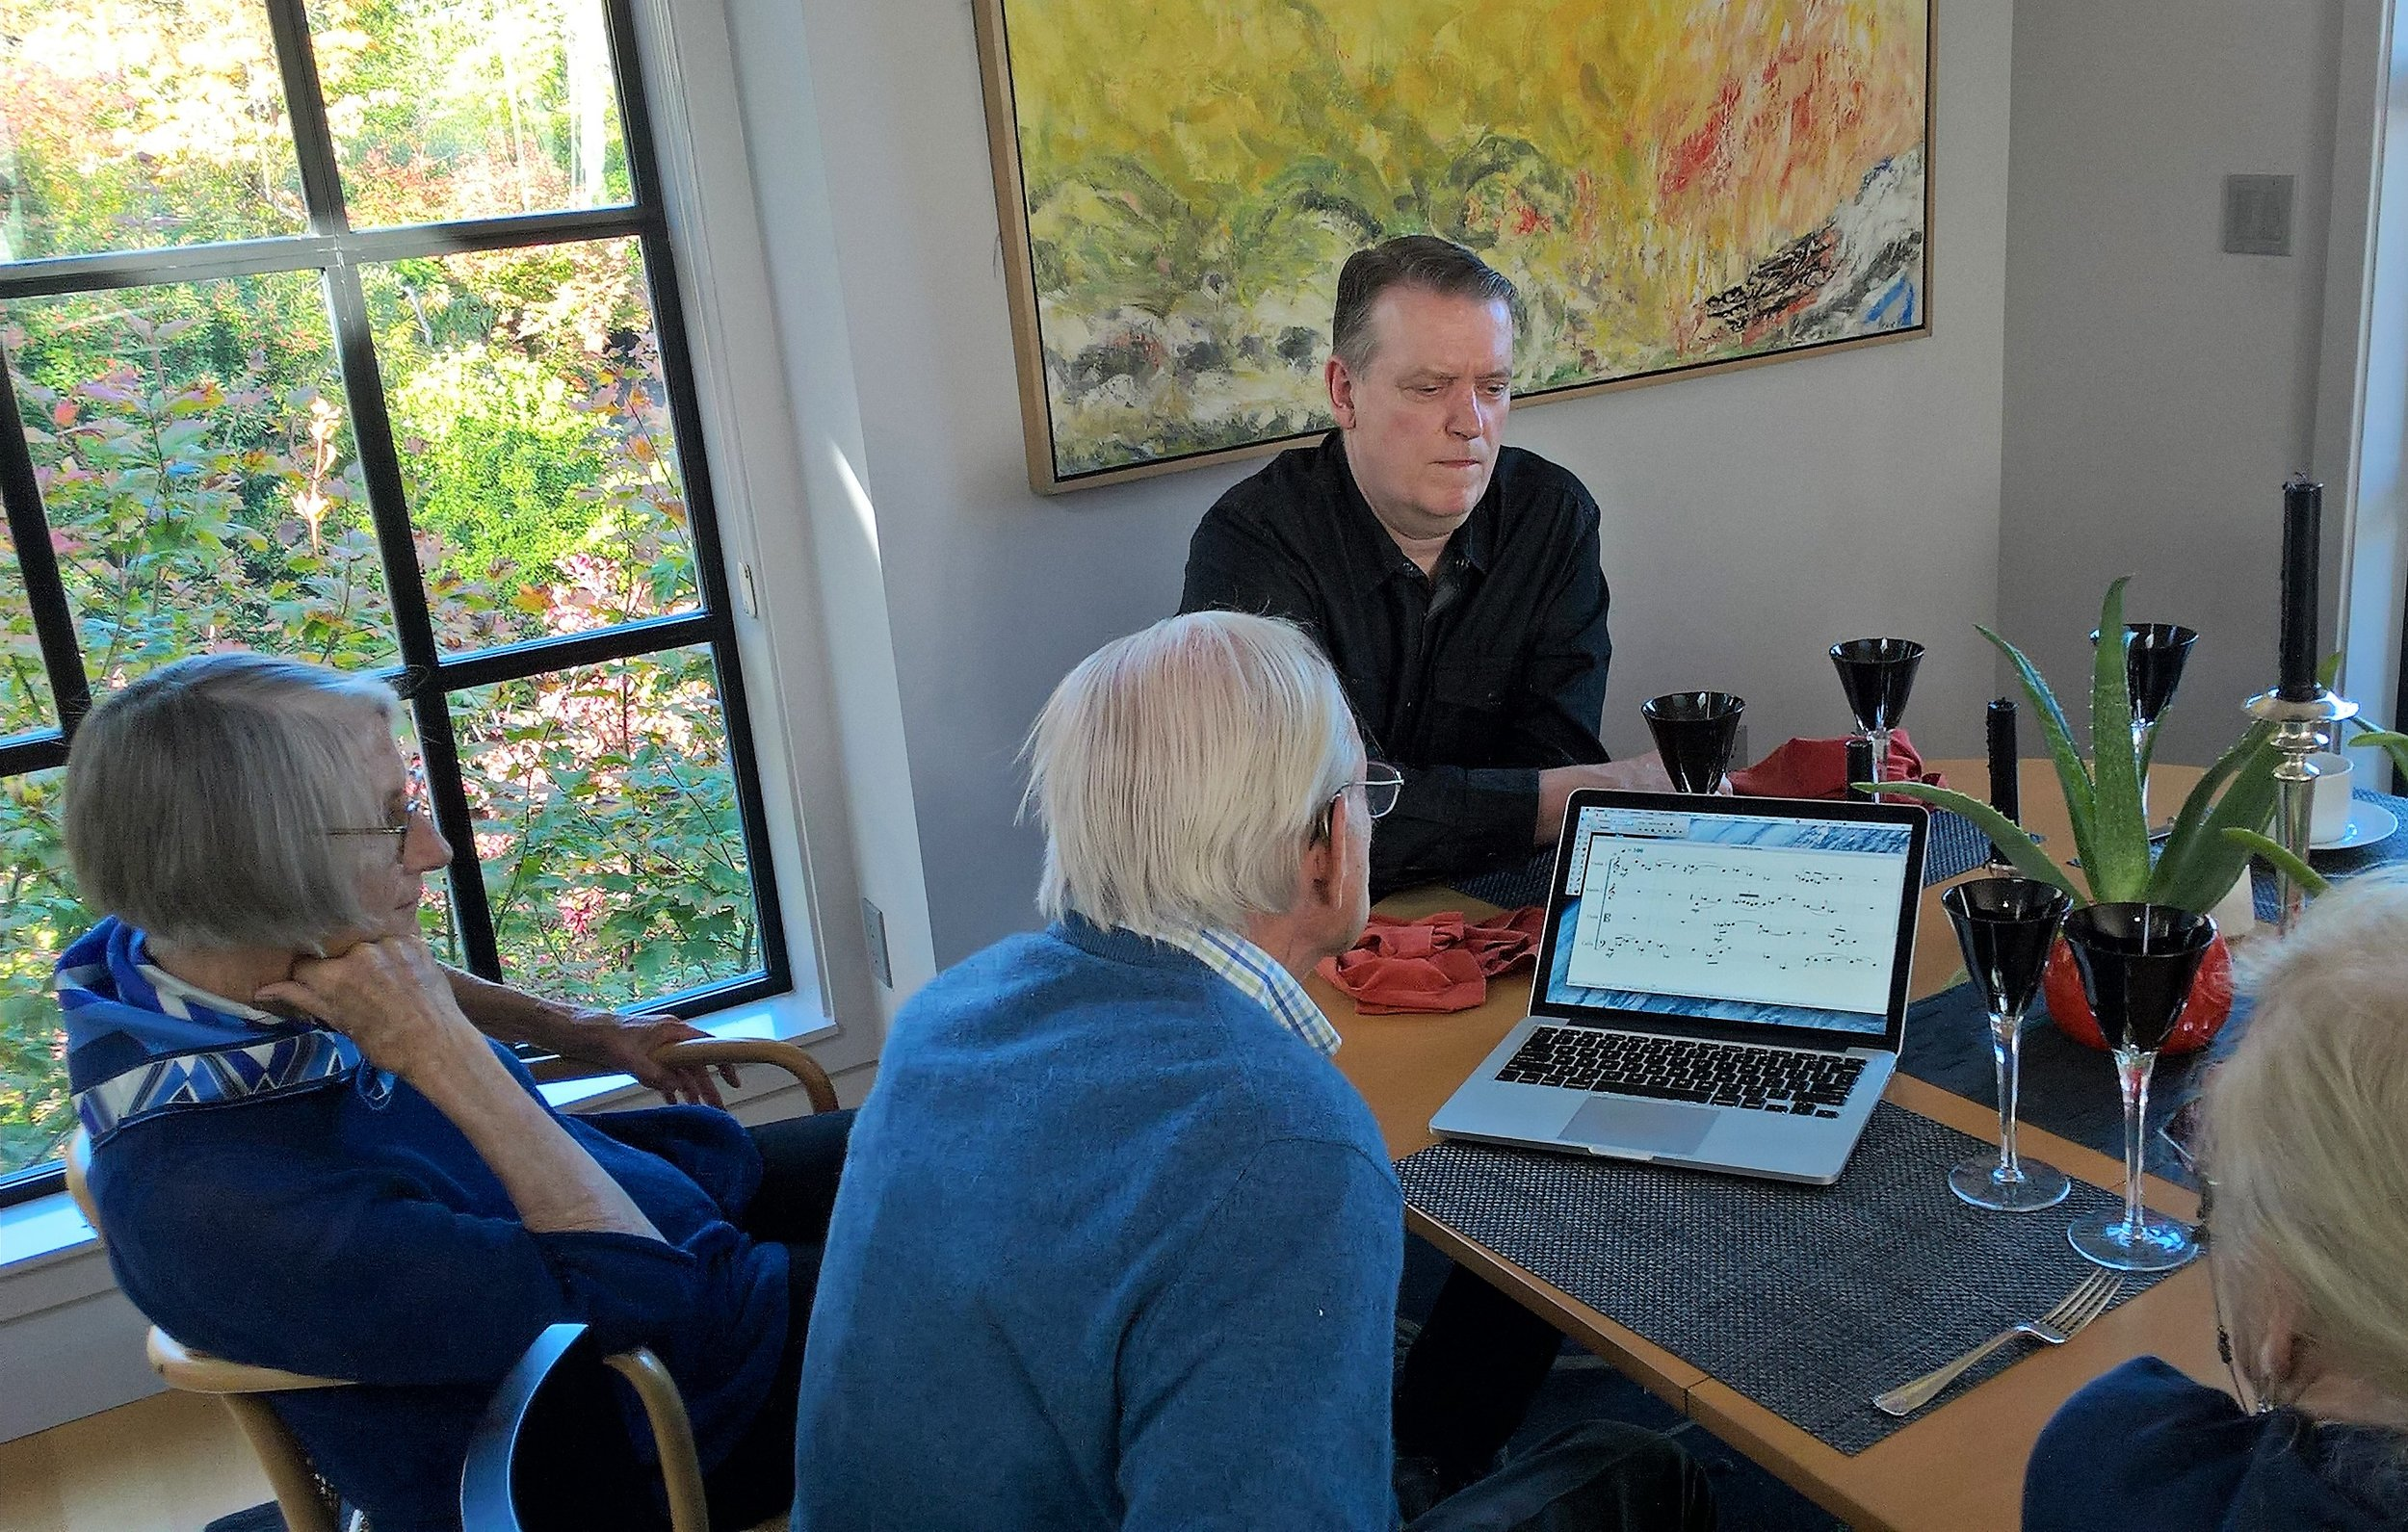 Discussing early fragments of the composition with Carl in Seattle in Oct 2016.